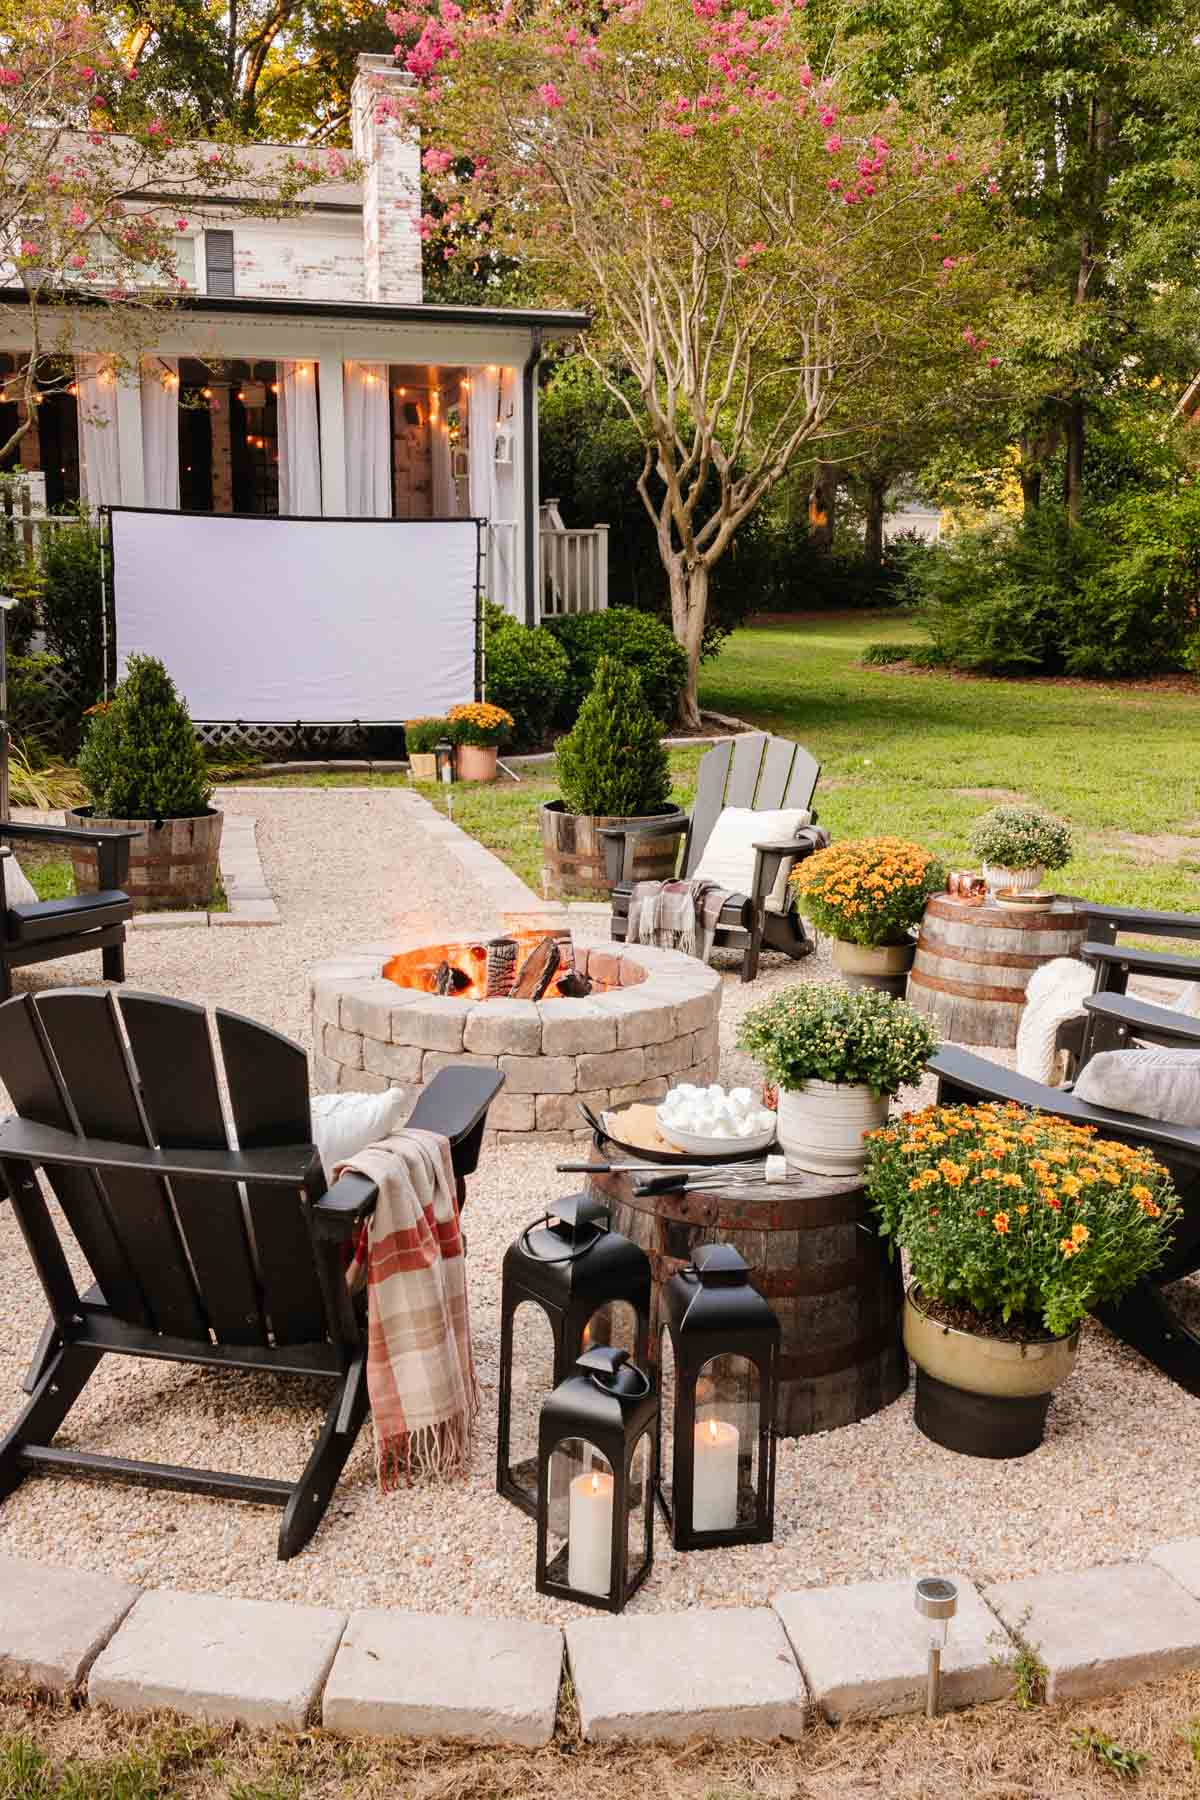 DIY fire pit with outdoor fall decor for a cozy backyard party